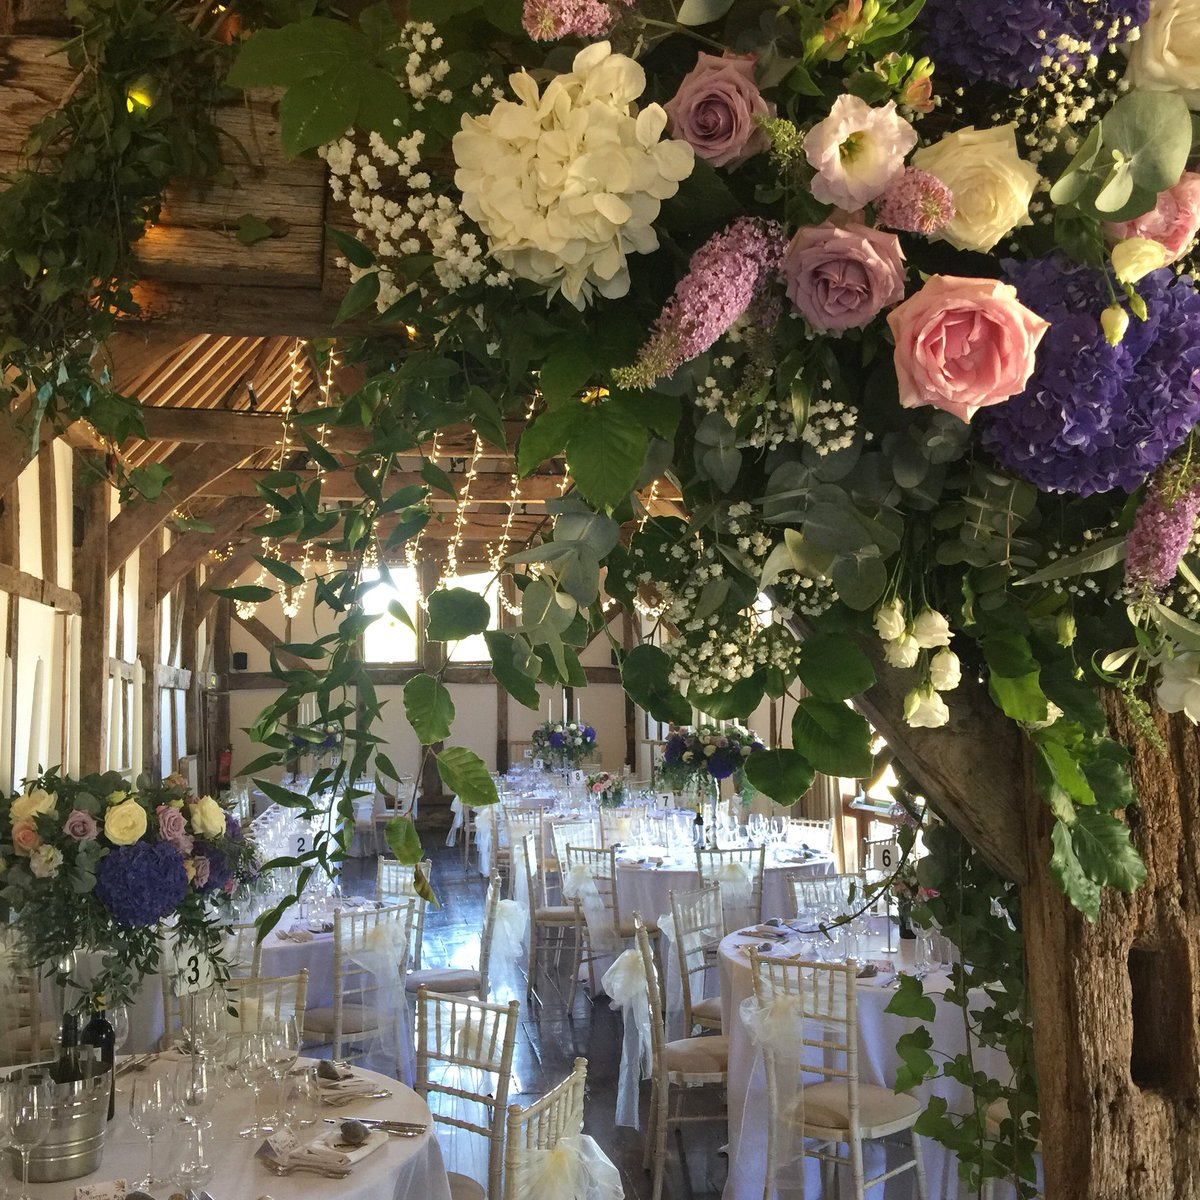 Just getting over a busy weekend of #weddings. Each one a different vibe with flowers from The Gorgeous Flower Company #barnwedding #beautifulvenue #weddingflowers #gorgeouscolours #bluehydrangea #fairylights #summerwedding #happyday